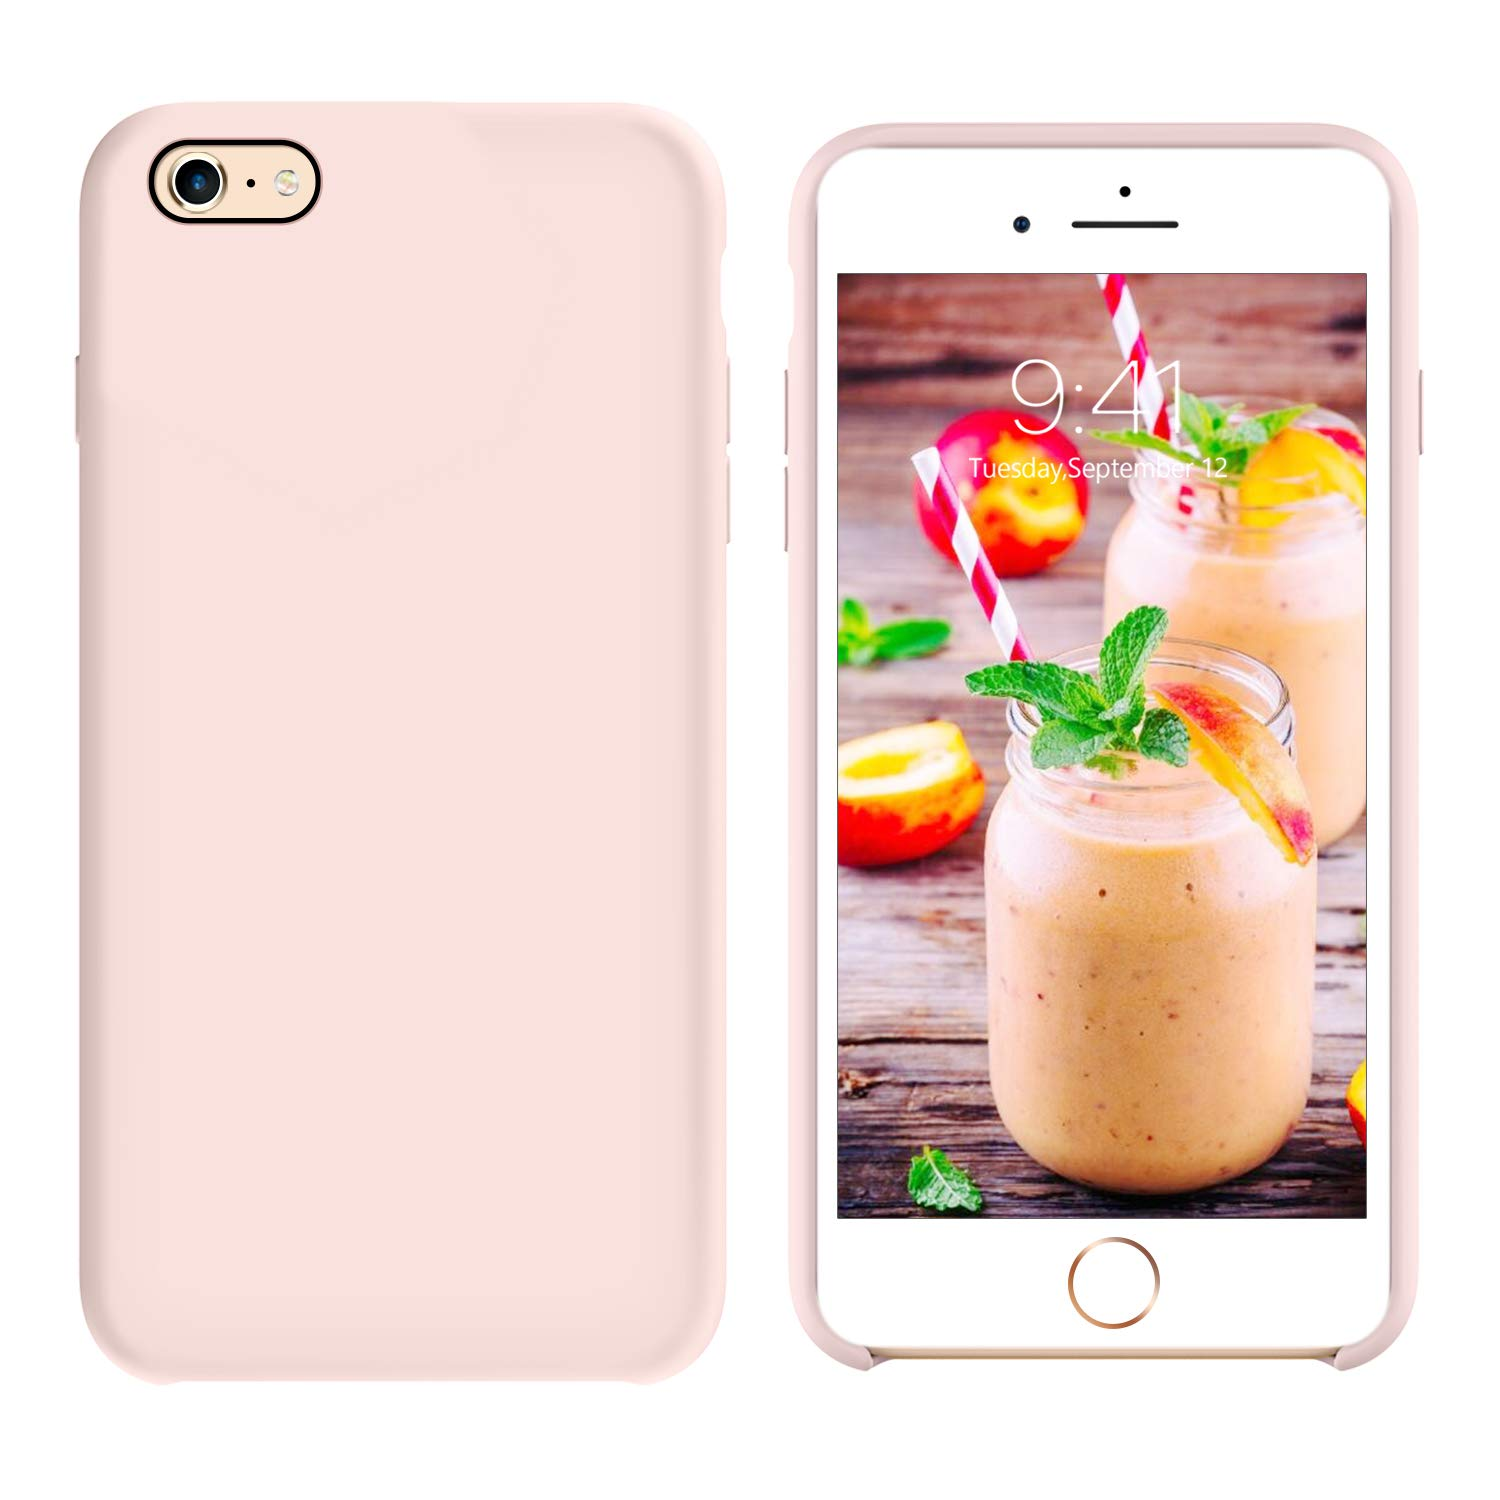 GUAGUA iPhone 6S Case iPhone 6 Case Liquid Silicone Gel Rubber Cover with Soft Microfiber Cloth Lining Cushion Slim Fit Lightweight Shockproof Protective Durable Phone Case for iPhone 6S/iPhone 6 Pink